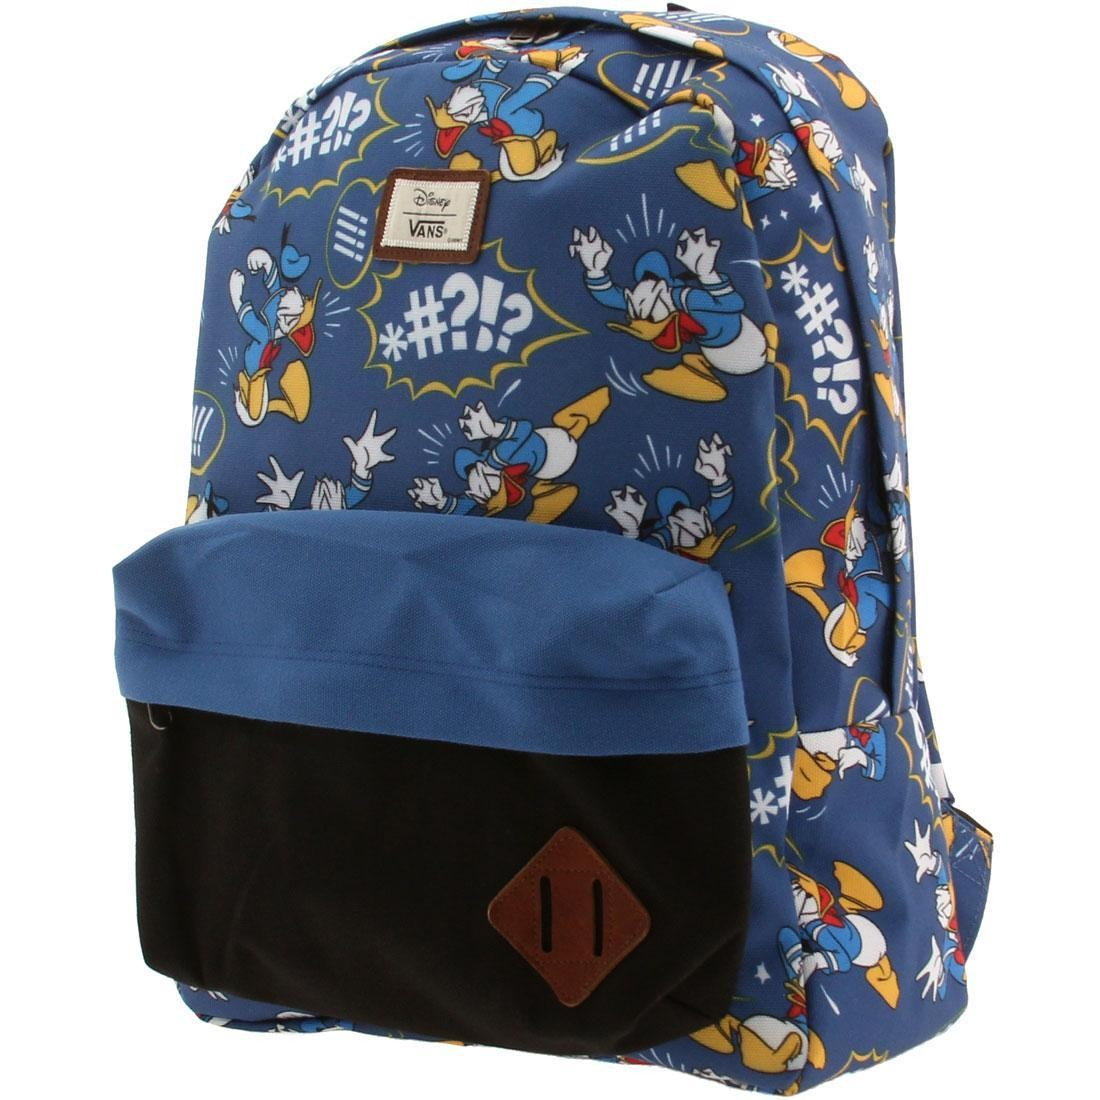 Vans x Disney Old Skool II Backpack - Donald Duck blue 2f2cee62ead3d